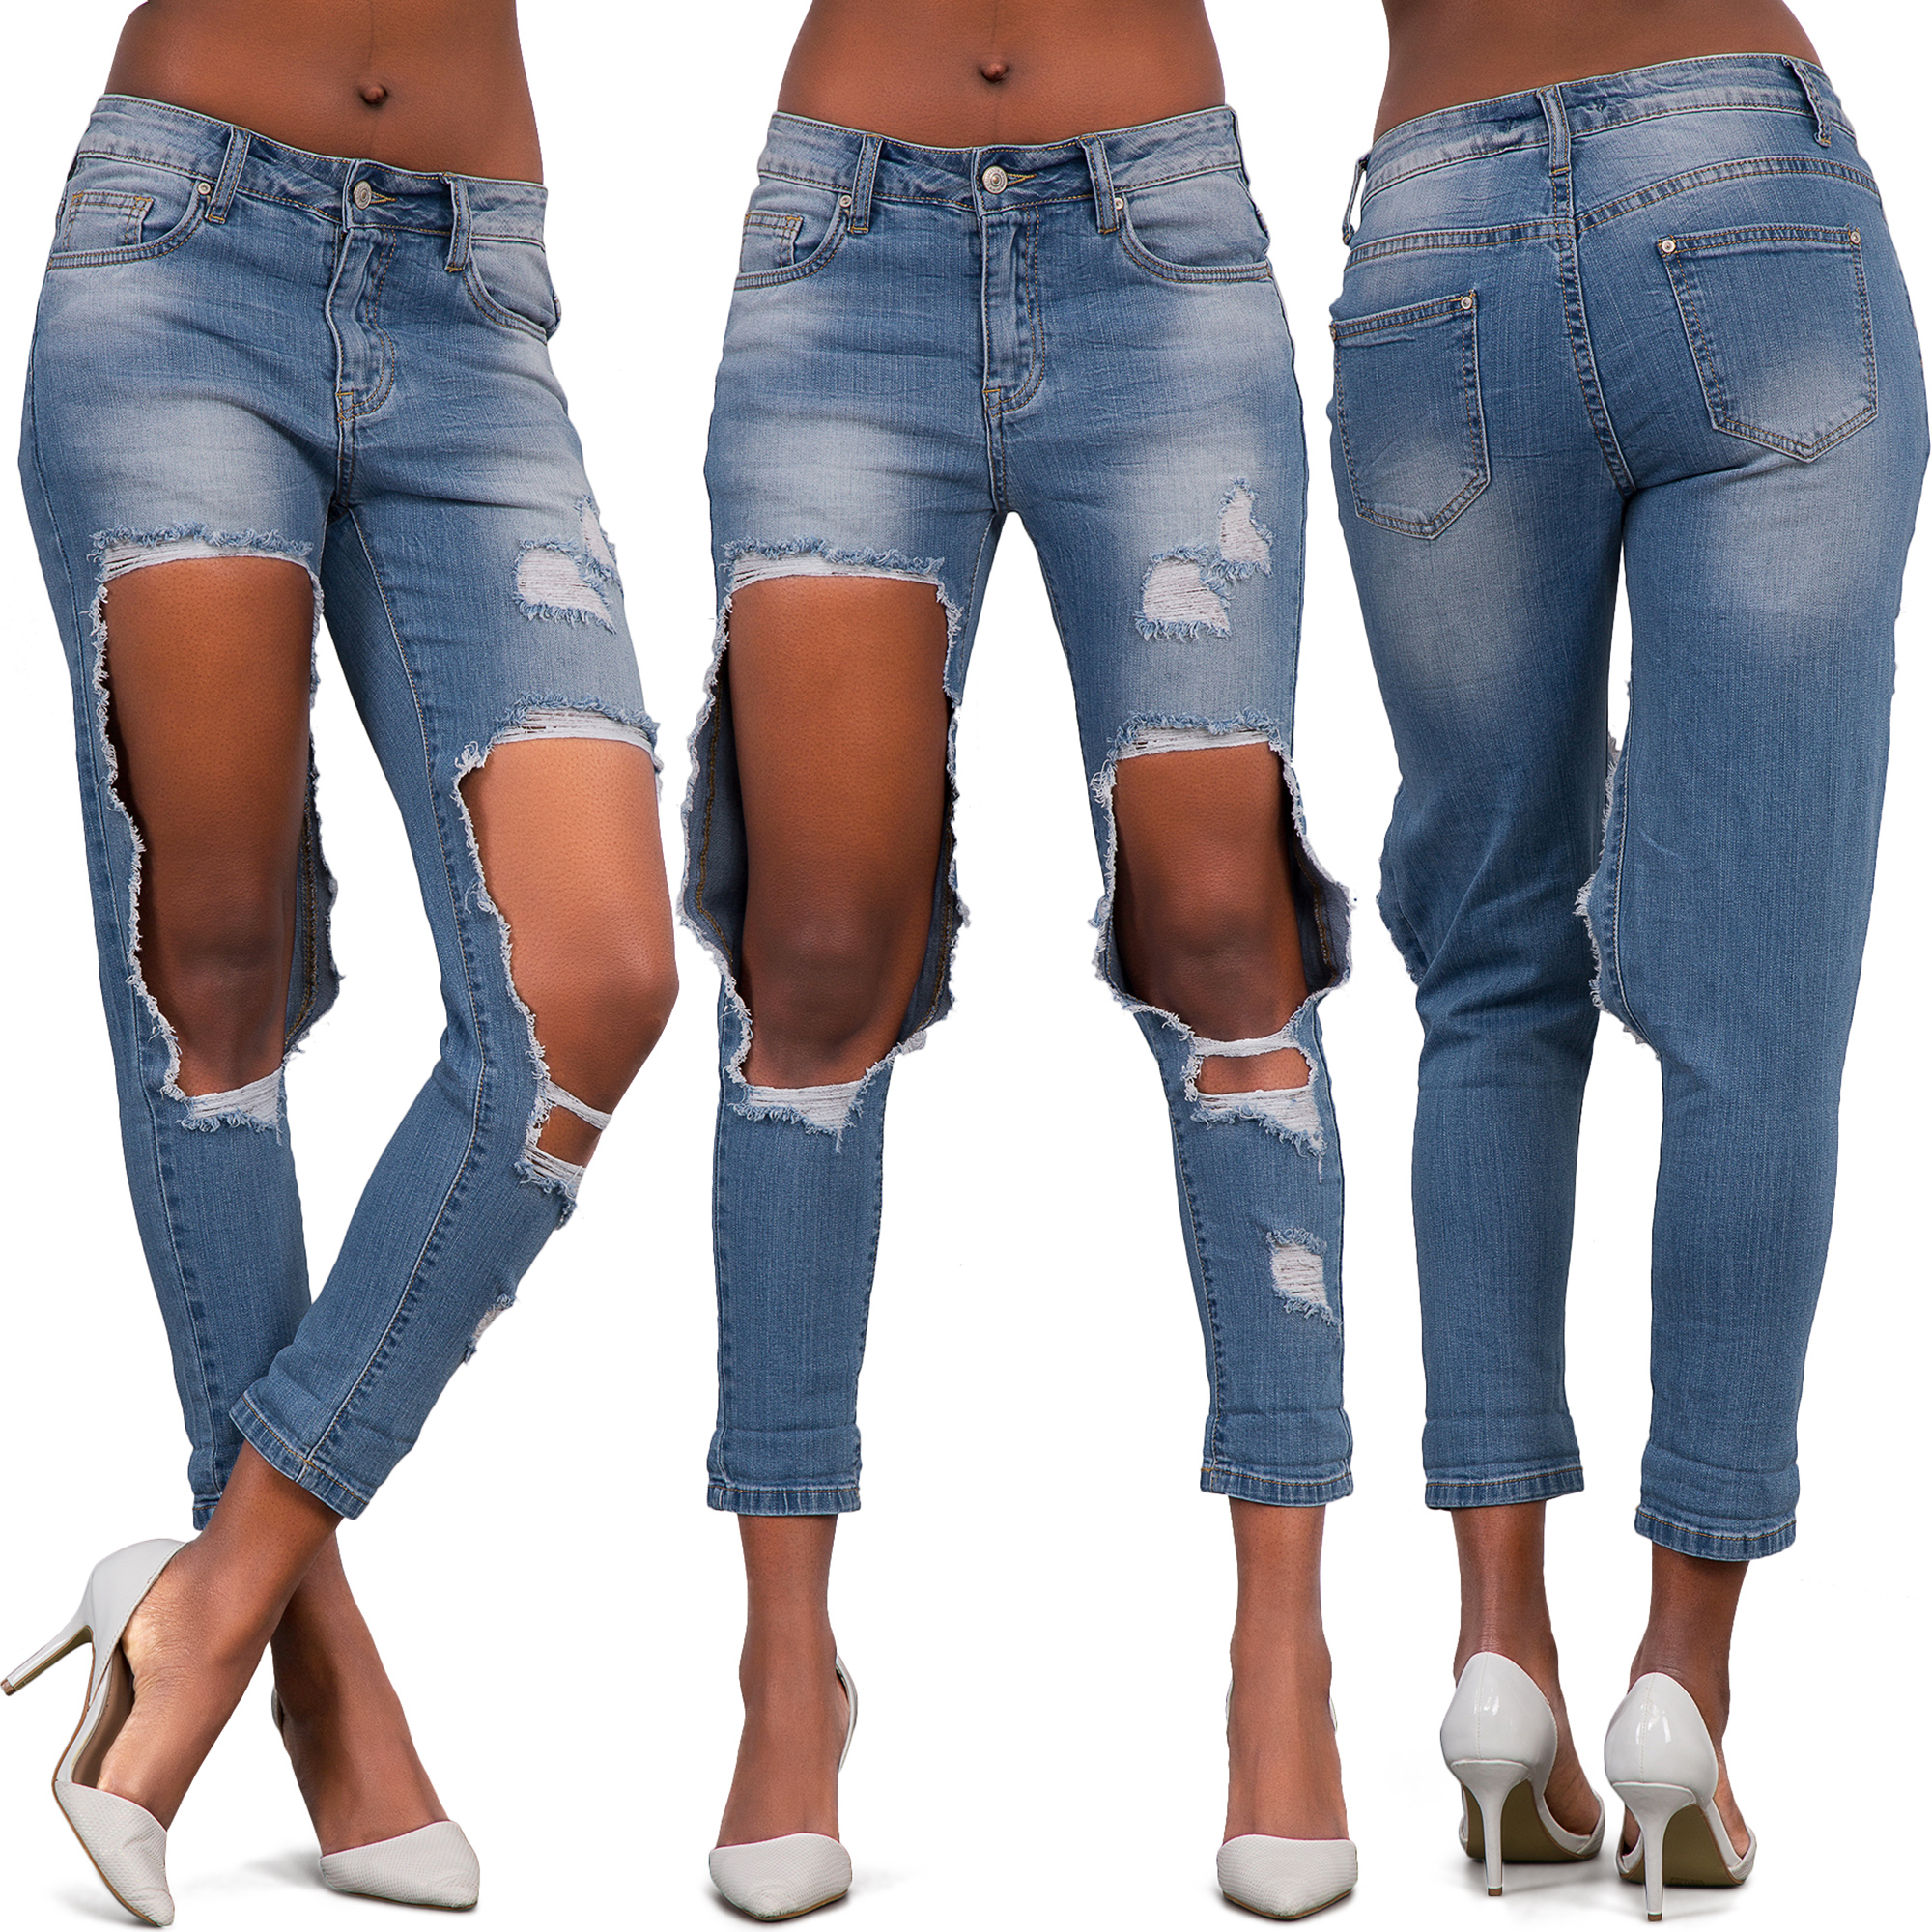 Womens-Ripped-Knee-Boyfriend-Mom-Jeans-Ladies-High-Waist-Frayed-Denim-Pants-6-14